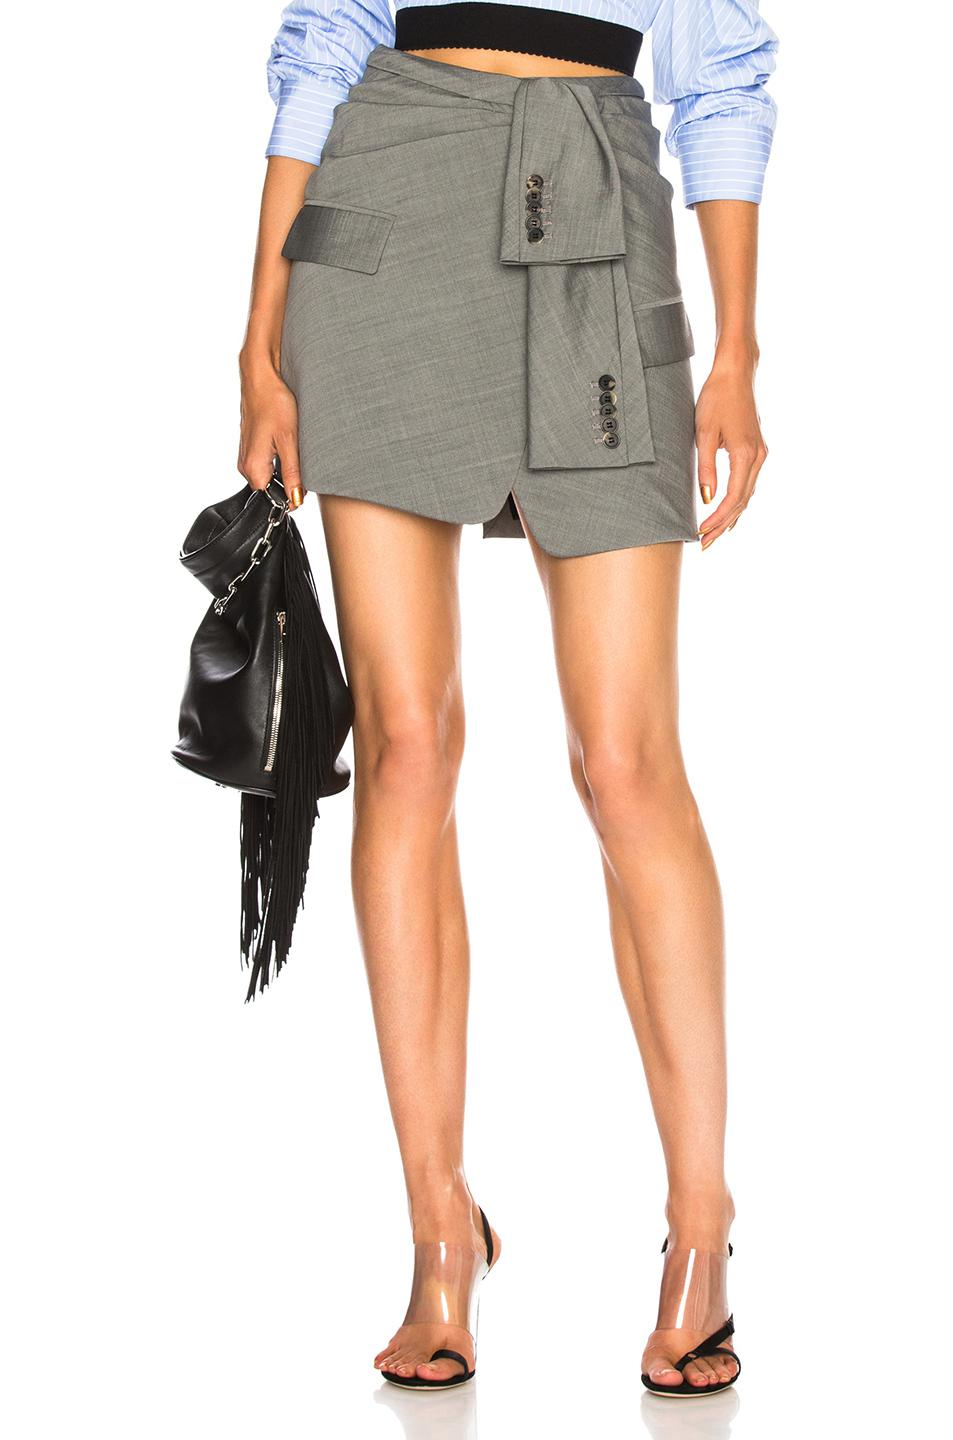 05634f72a Alexander Wang Asymmetric Tie Front Skirt in Gray - Lyst